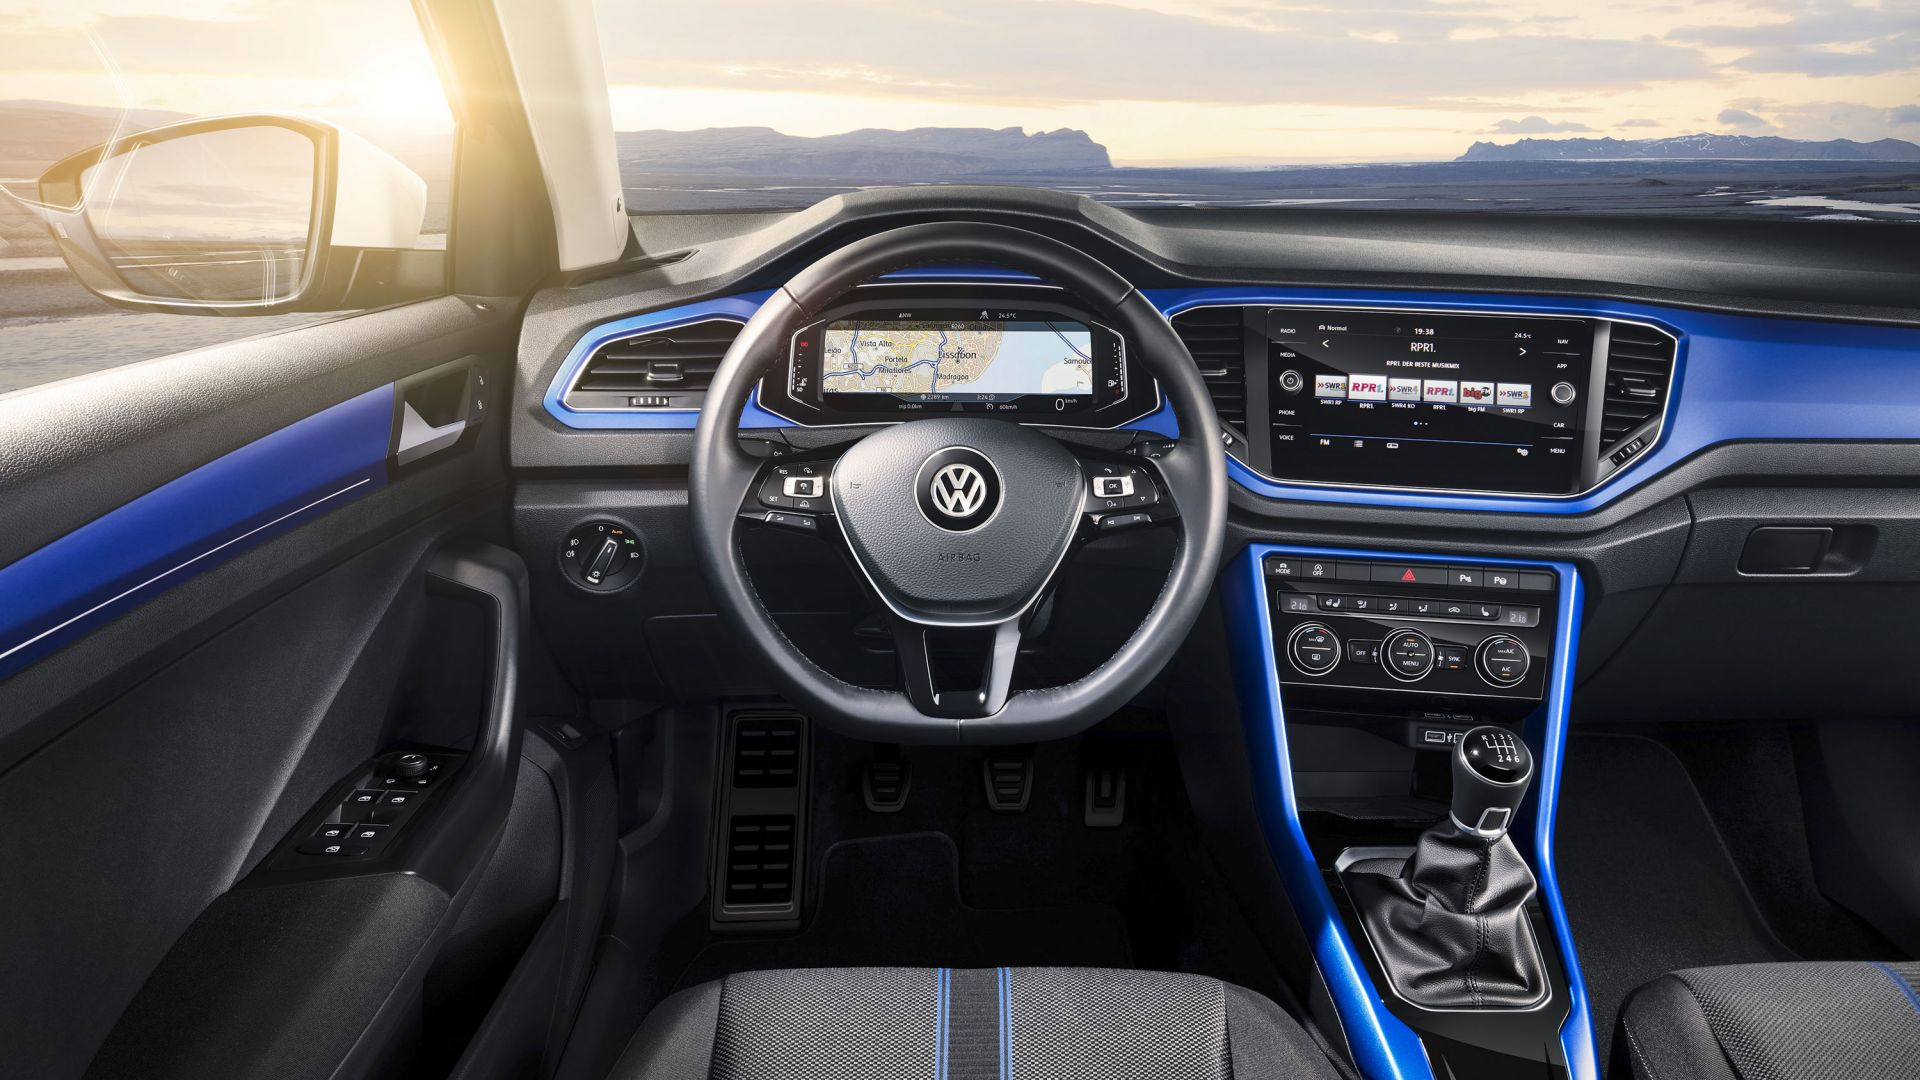 Volkswagen T-Roc, 2020 Cars, interior, 4k (horizontal)